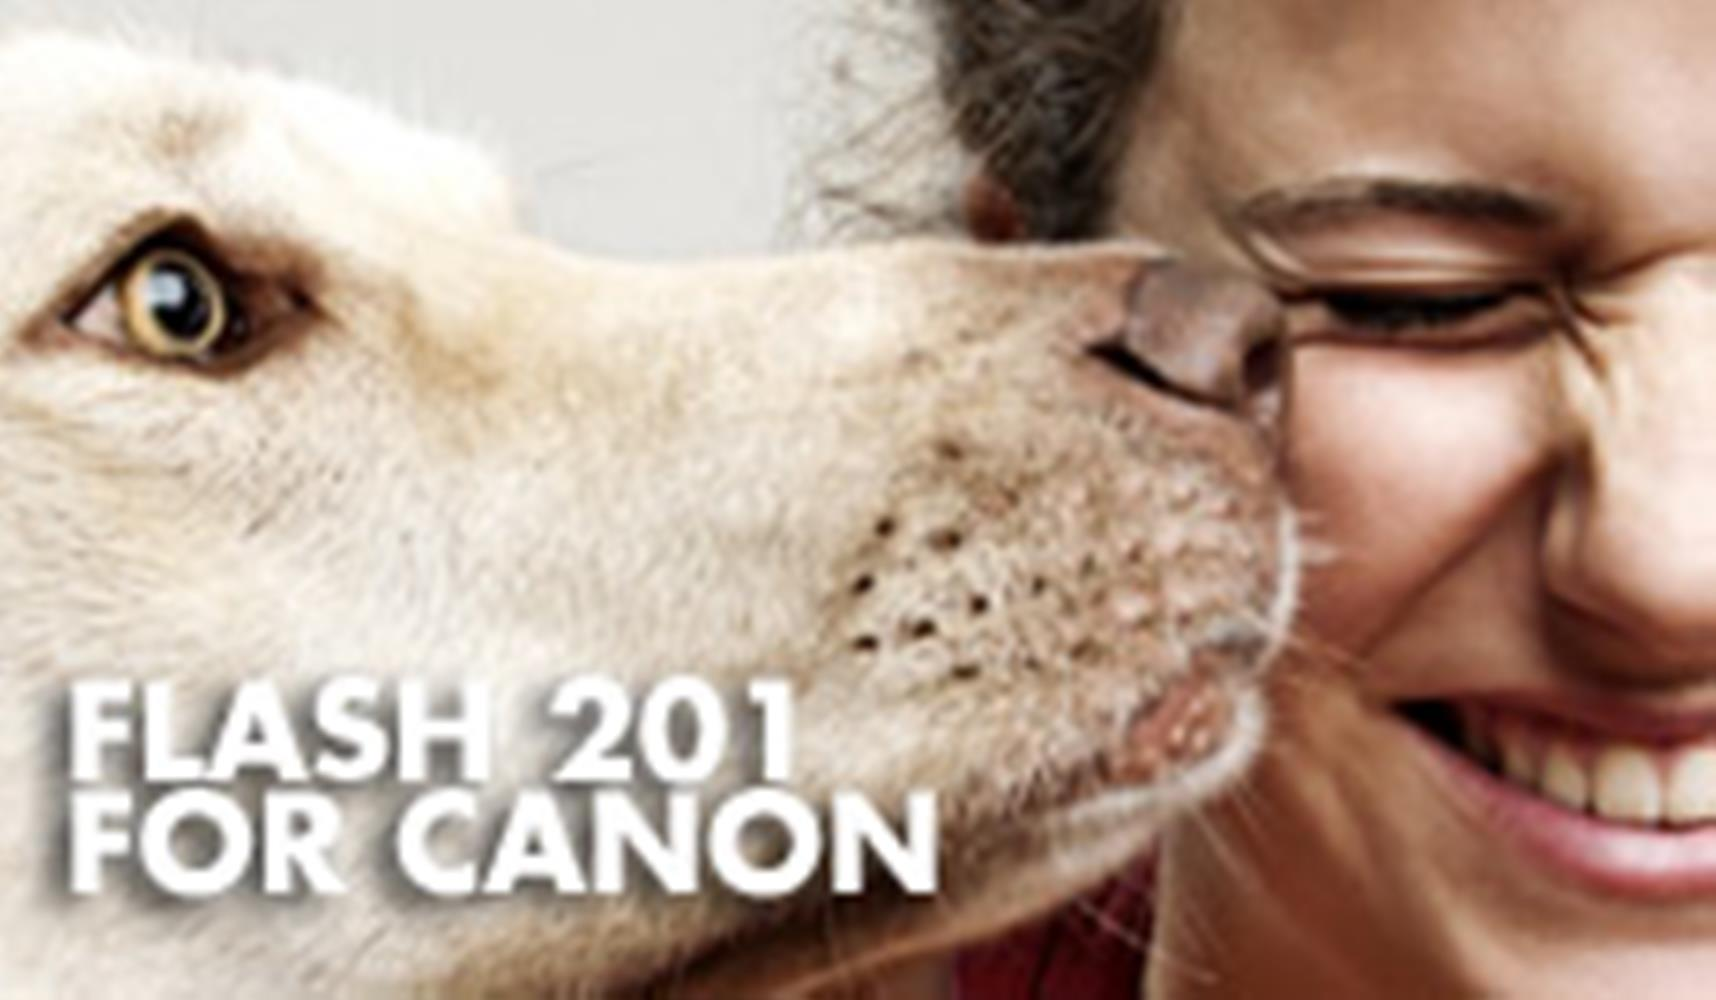 Flash 201 for Canon